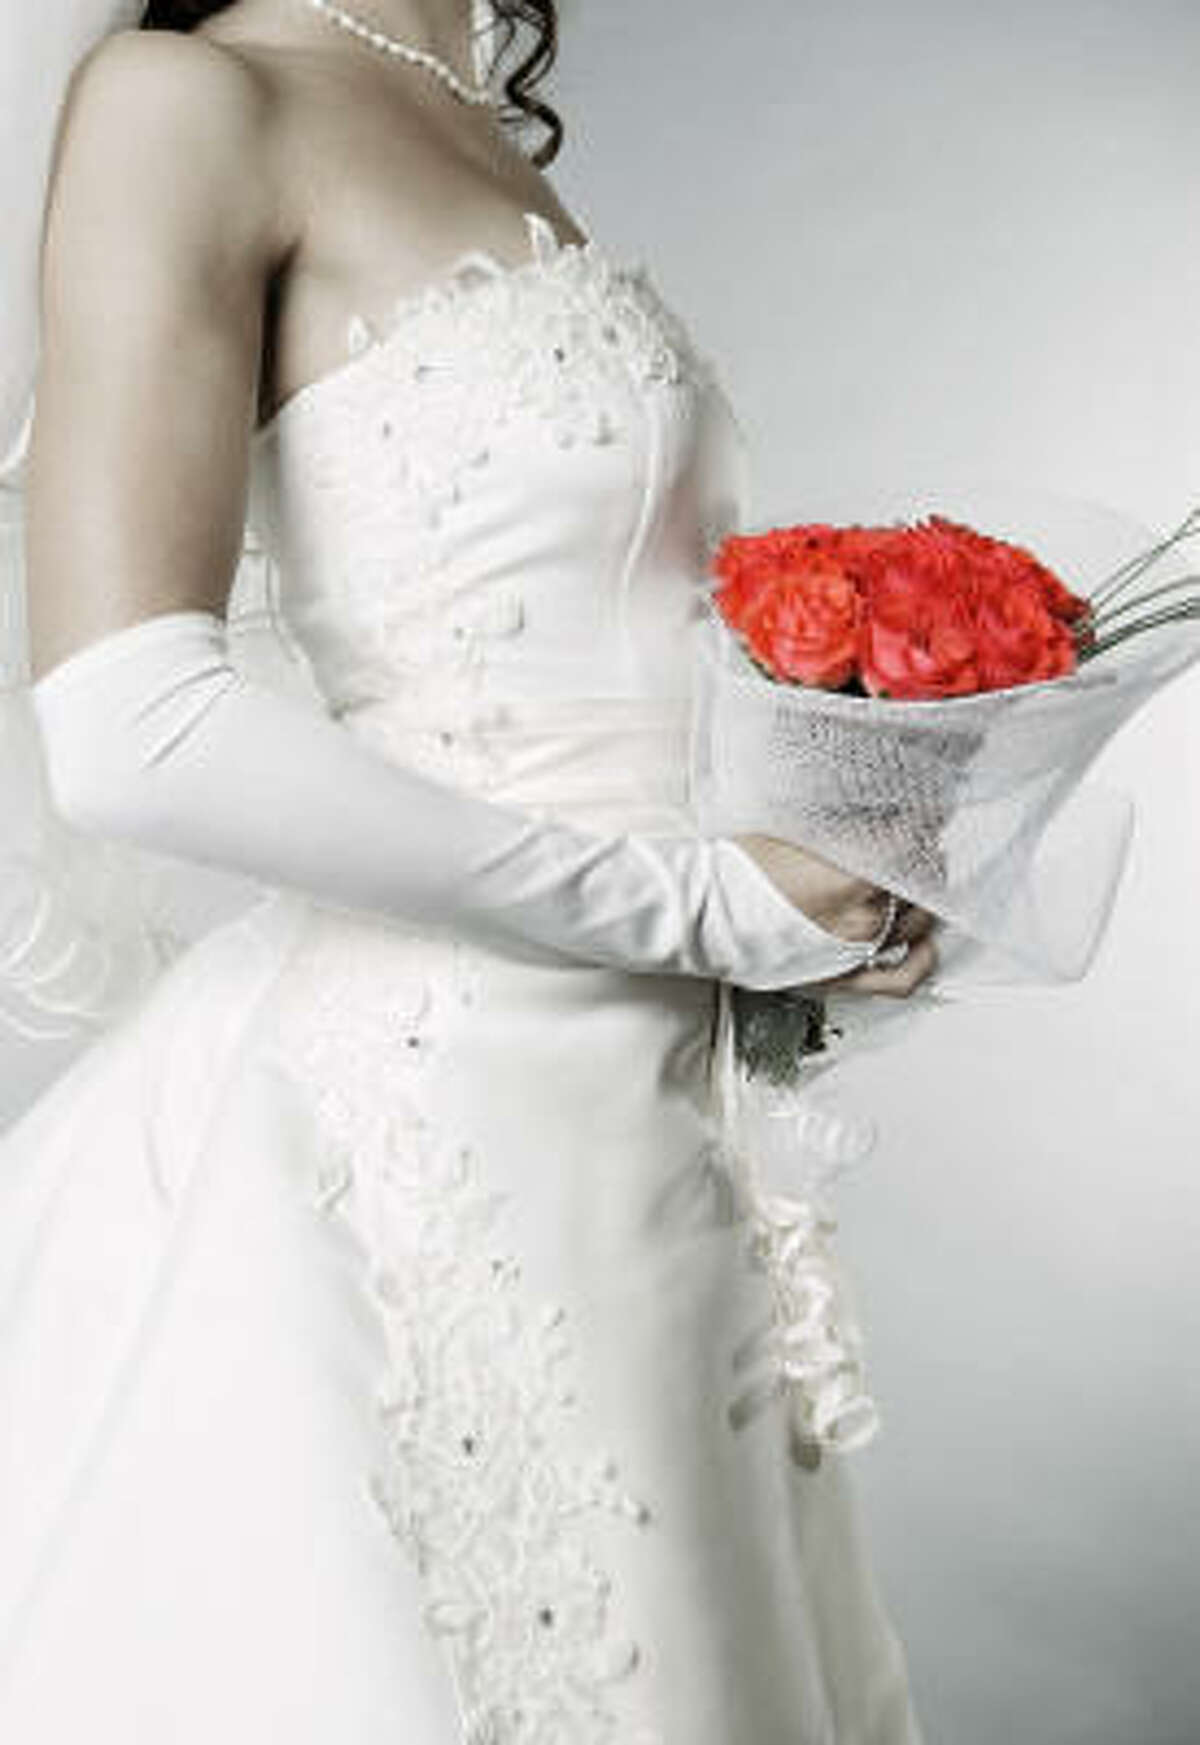 Calling off a wedding can be a traumatic situation for a couple.